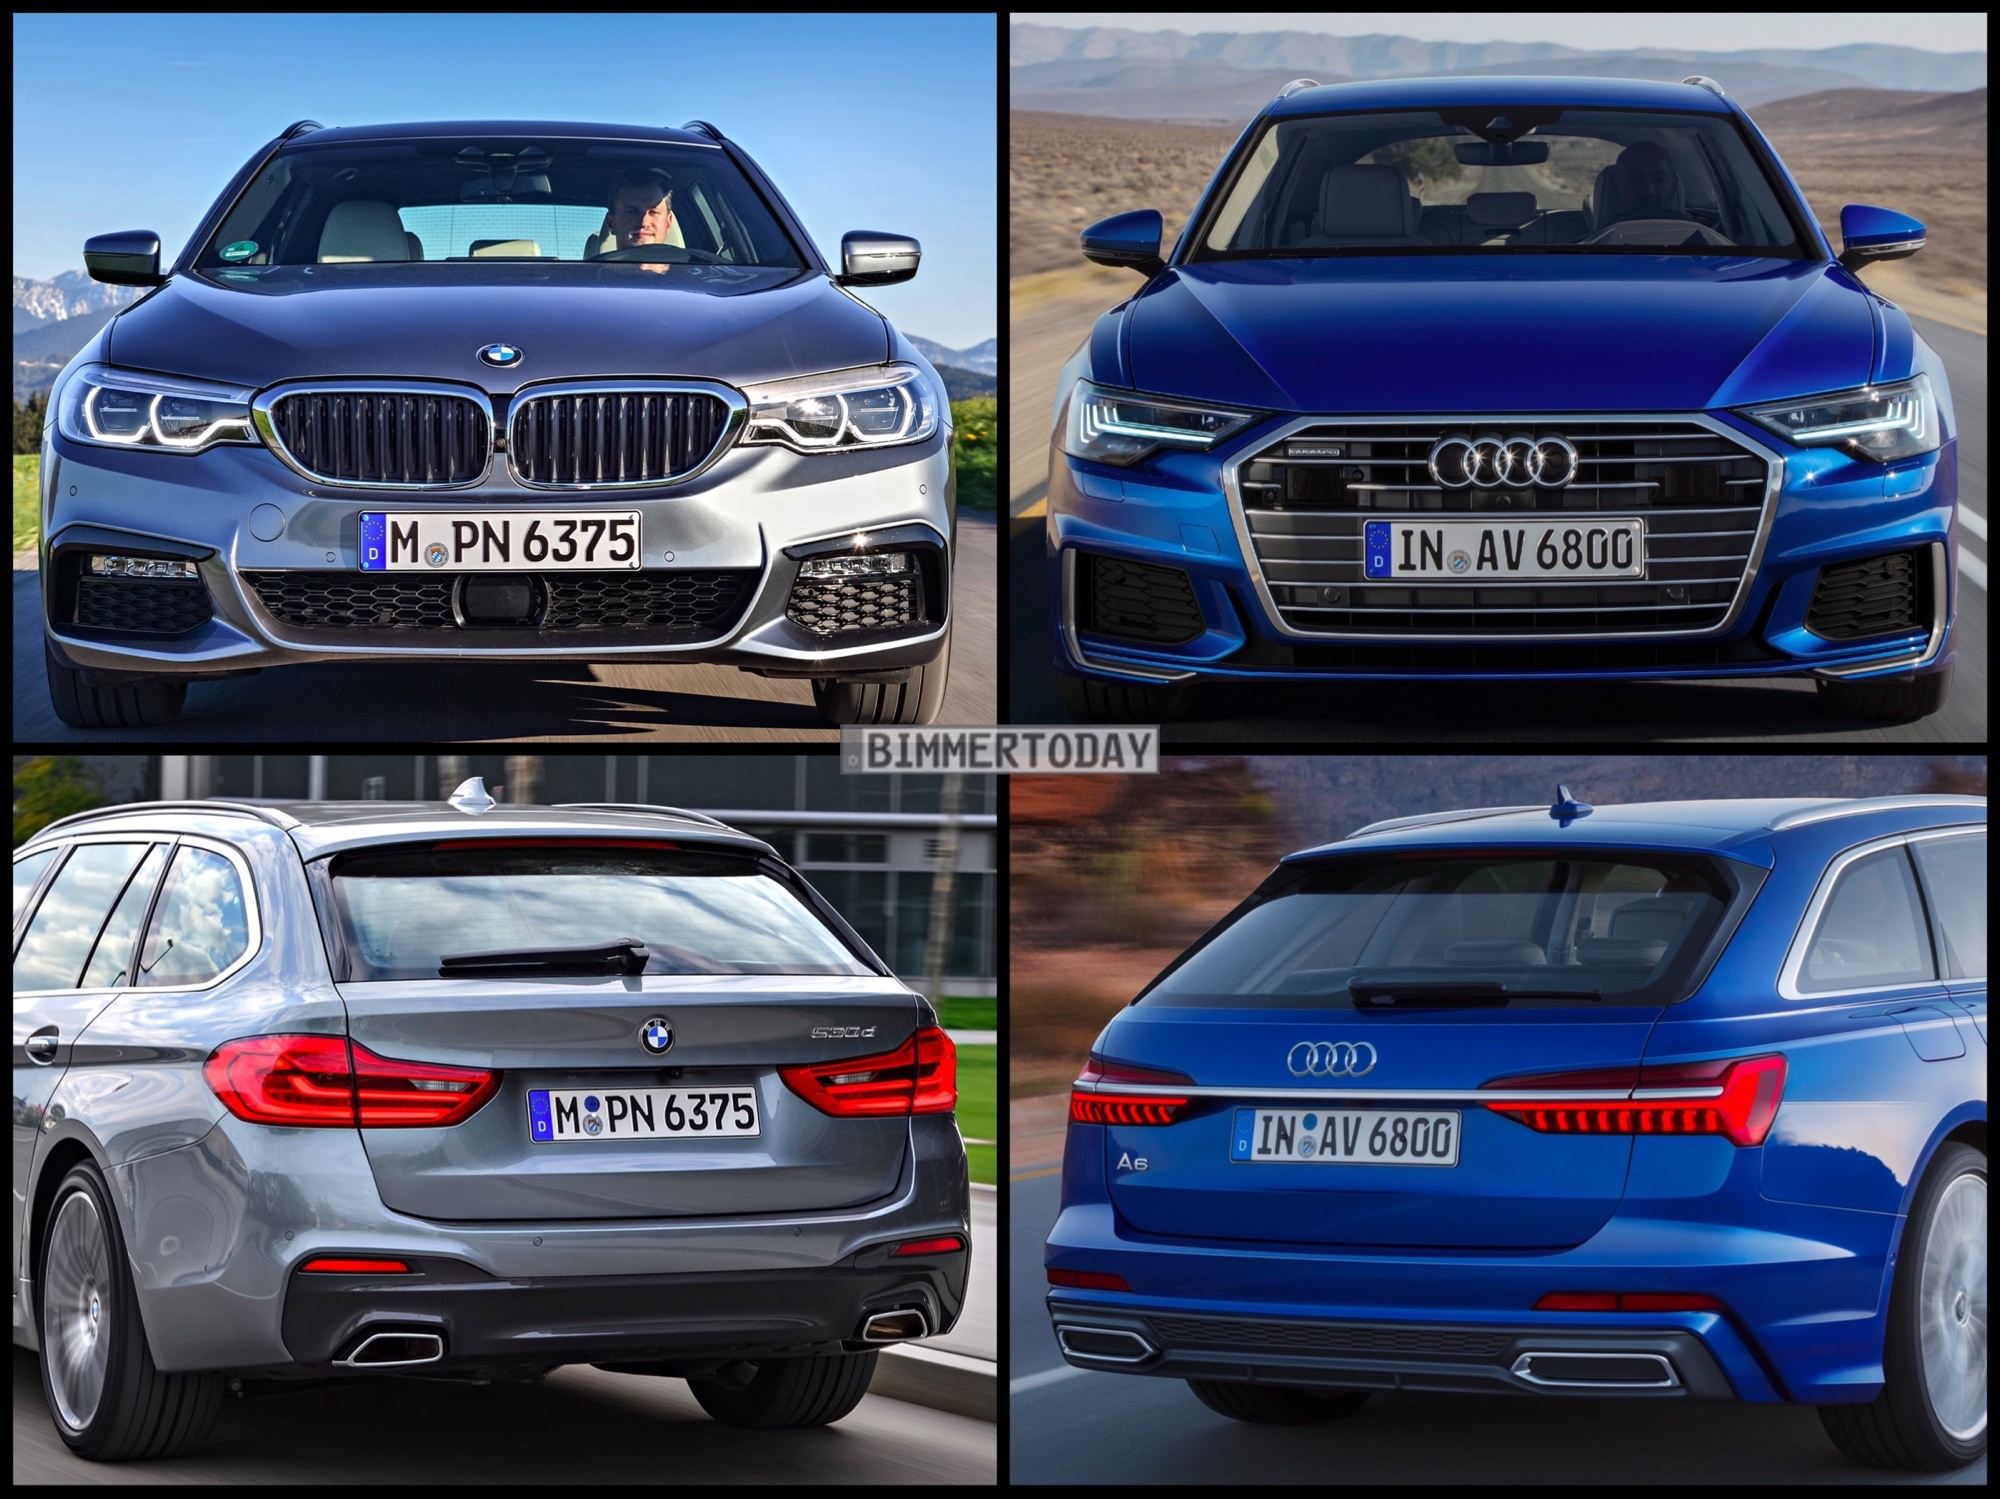 Photo Comparison Audi A Avant Vs BMW Series Touring - Bmw vs audi